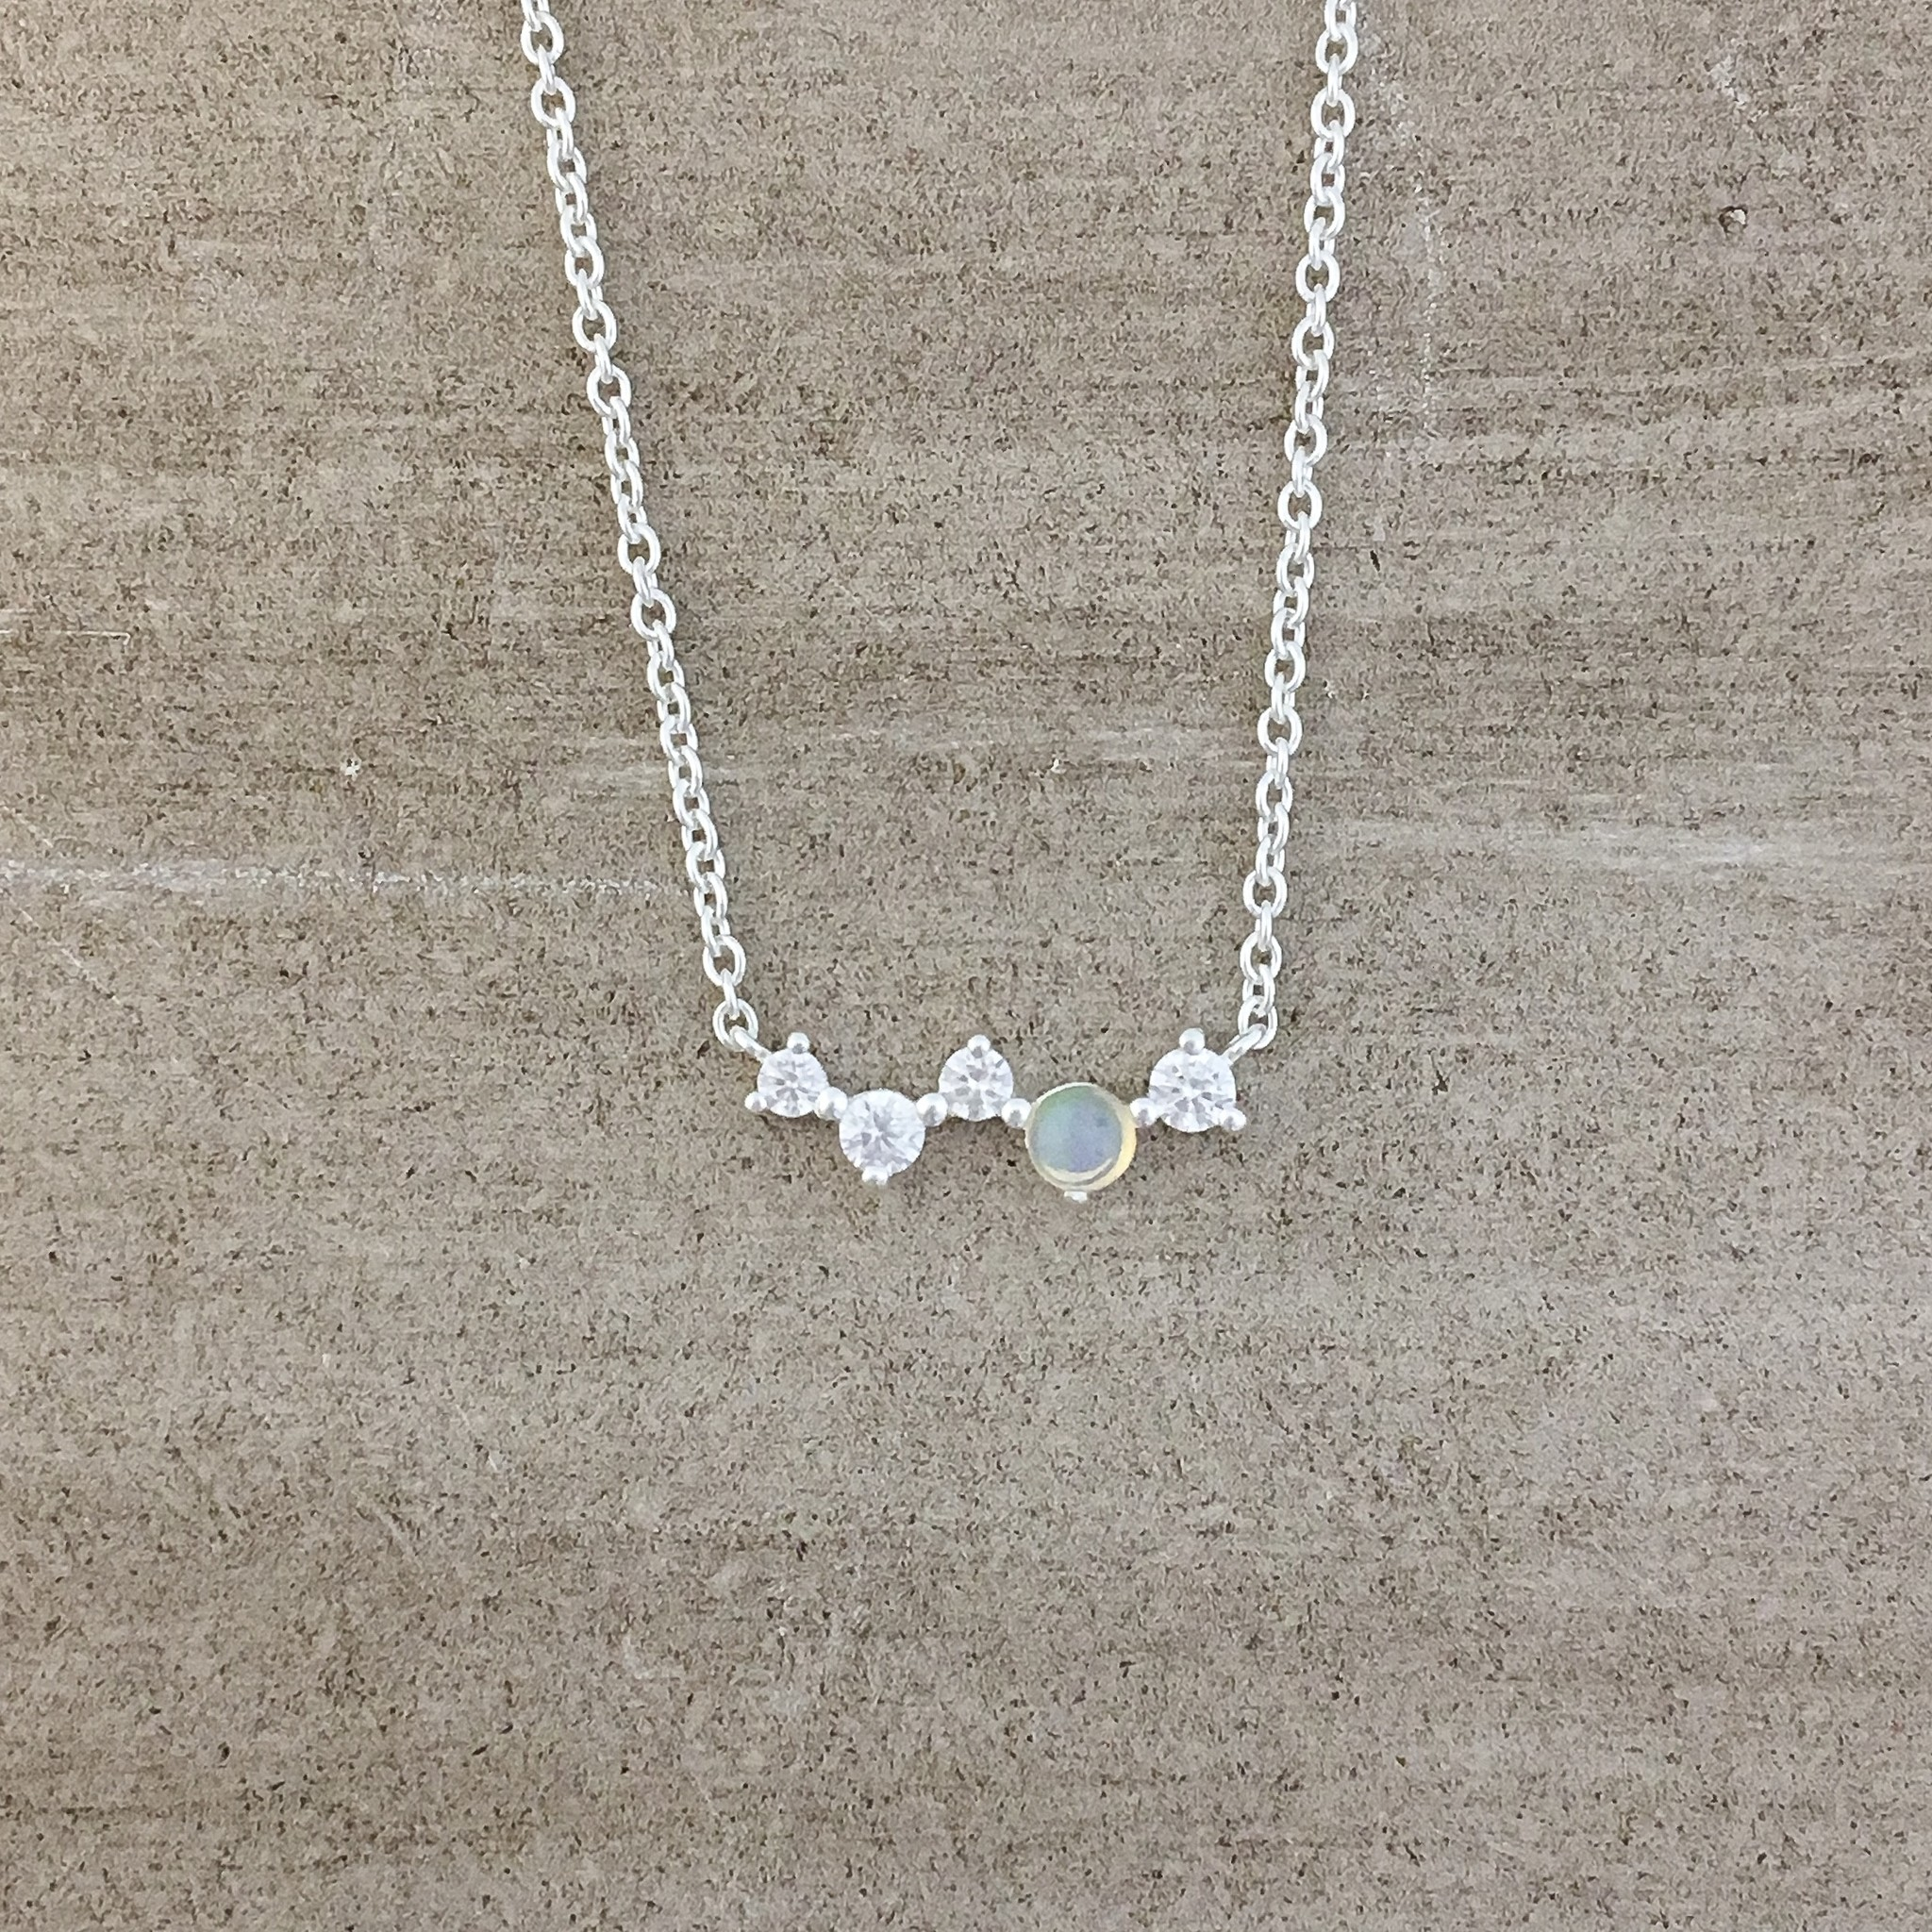 Tashi Silver Cz and Tiny Pearl Necklace